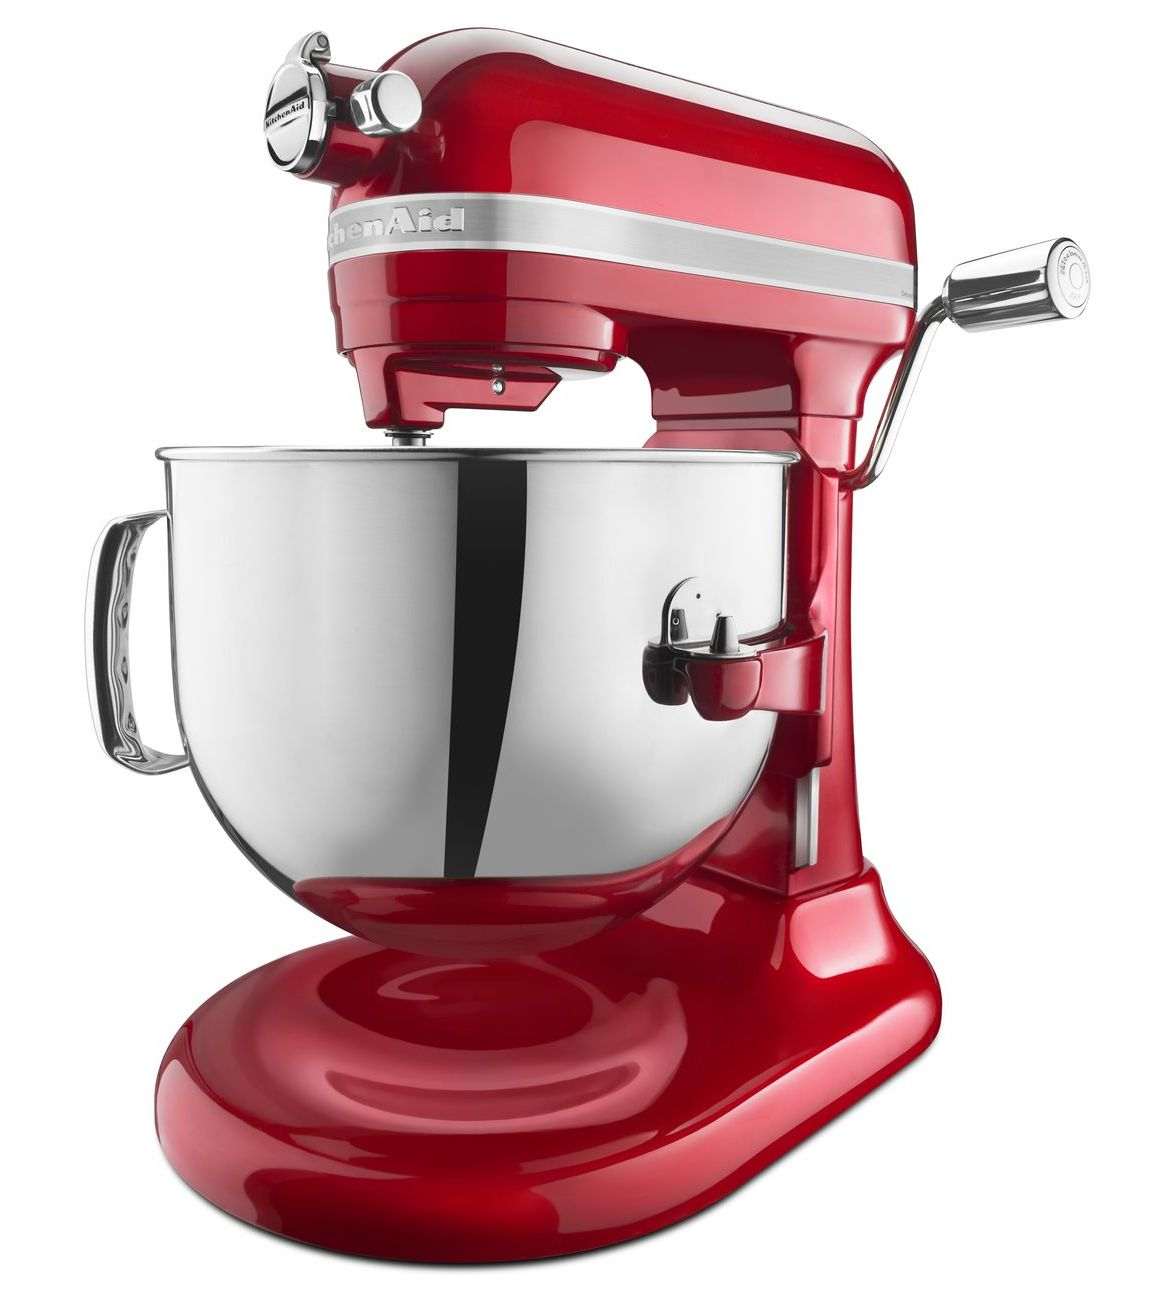 kitchenaid pro line 7 qt stand mixer candy apple red